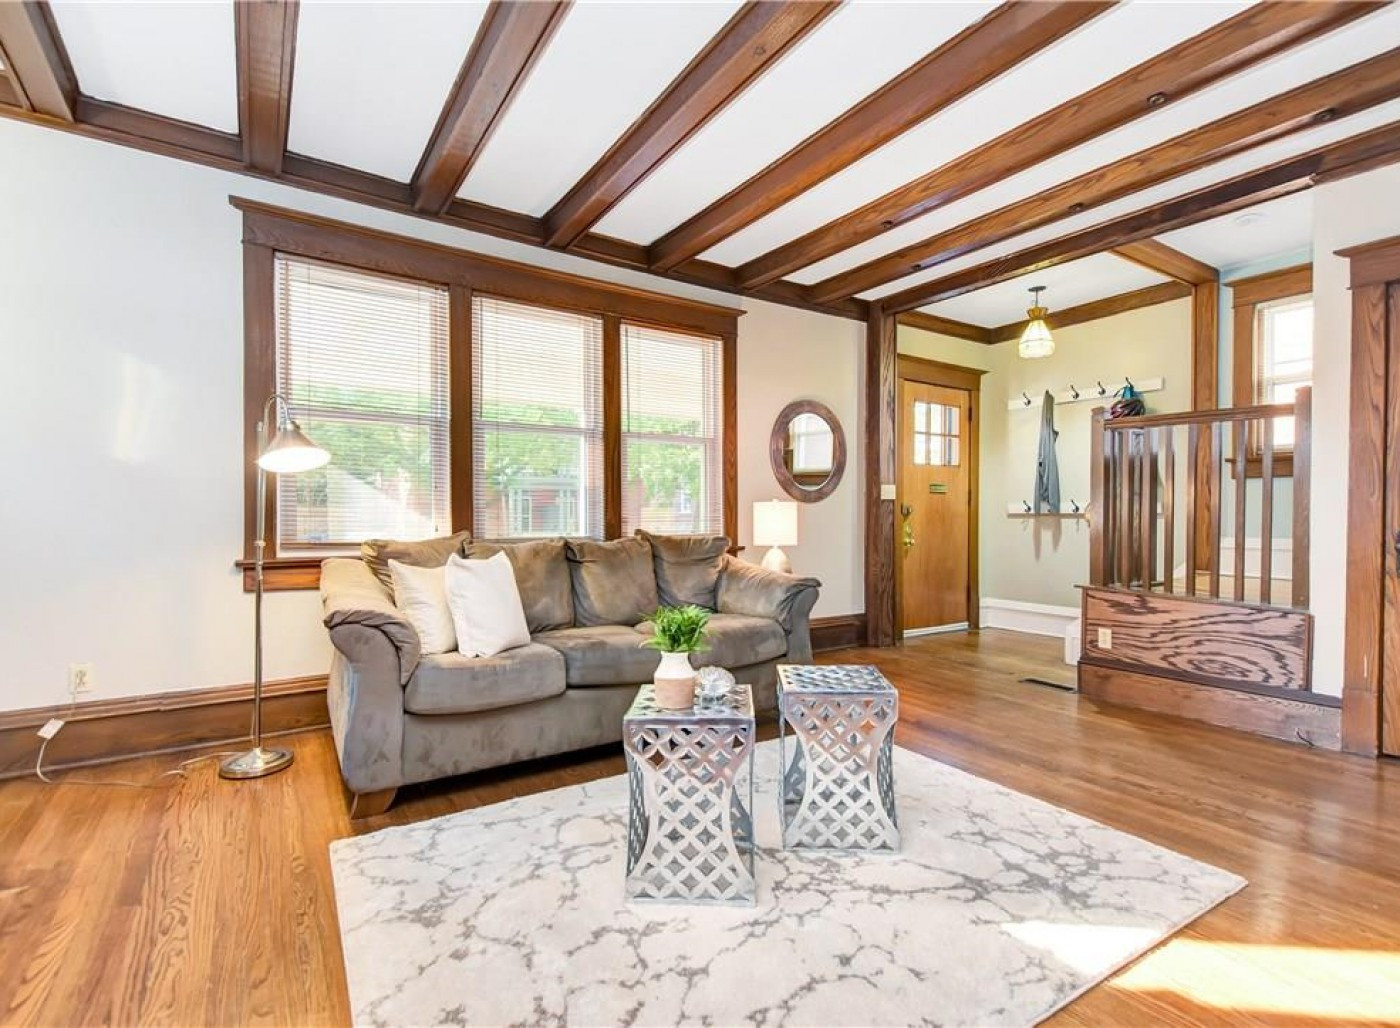 hardwood flooring ottawa ontario of 22 euclid avenue faulkner real estate intended for spacious tudor style home with charming veranda on a popular street in old ottawa south main floor features kitchen with lots of storage granite counters